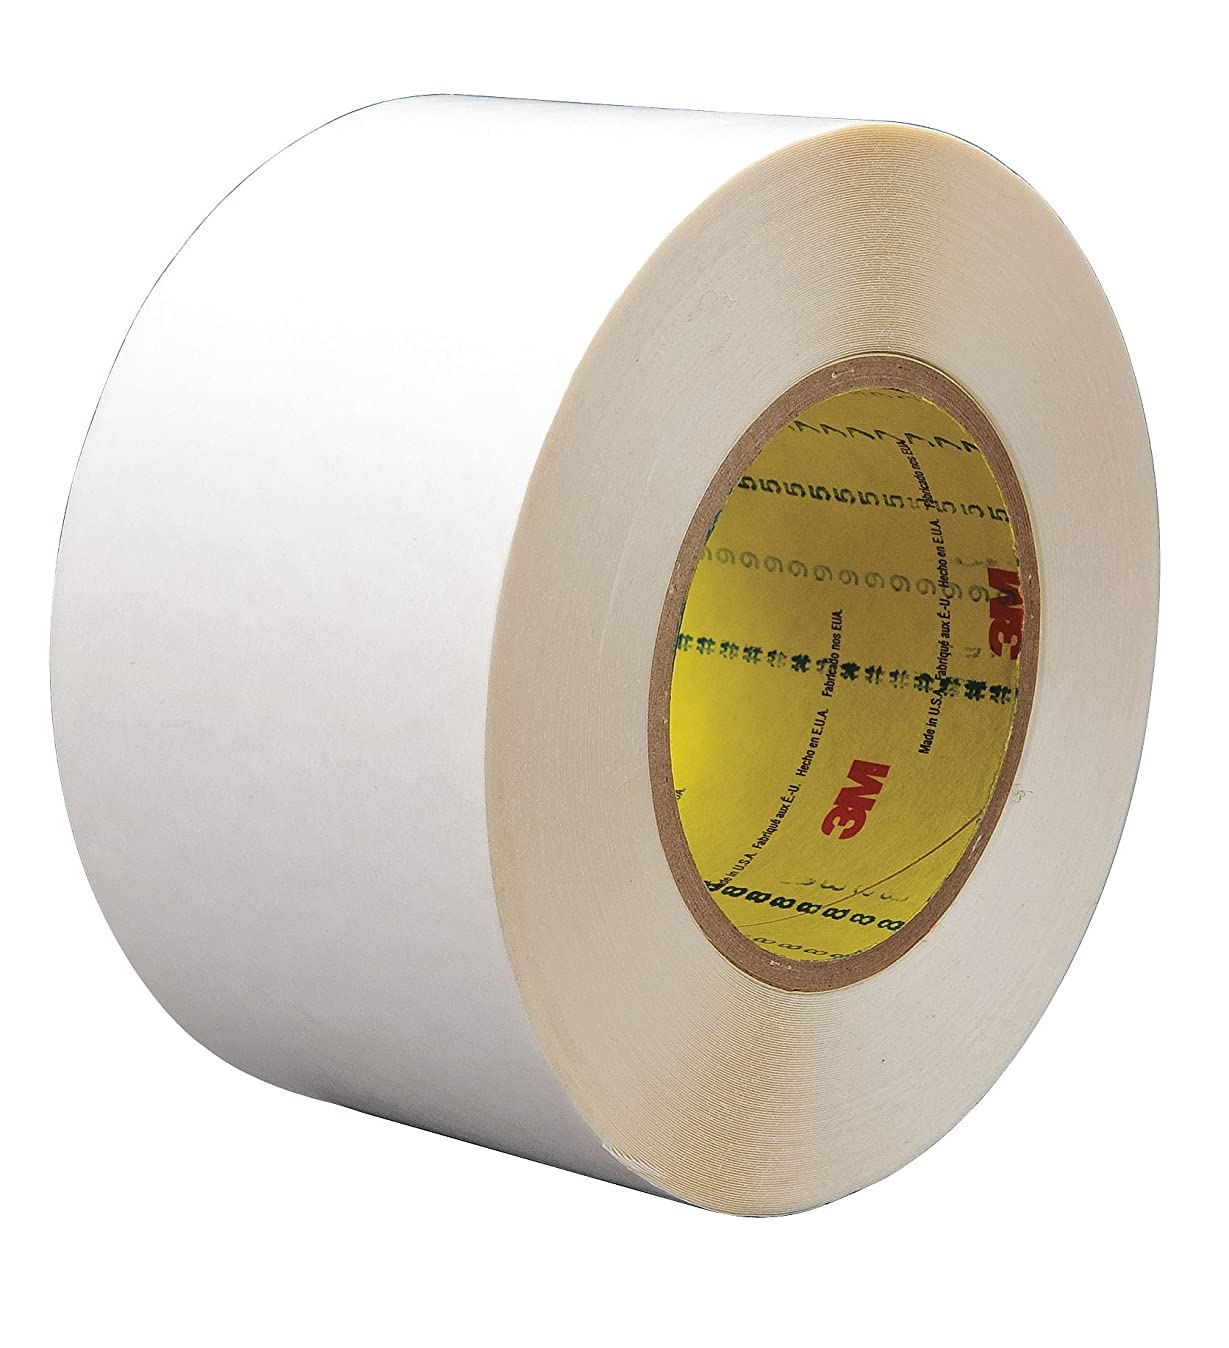 3M 9579 White Double Coated Tape, 9 mil, 0.75